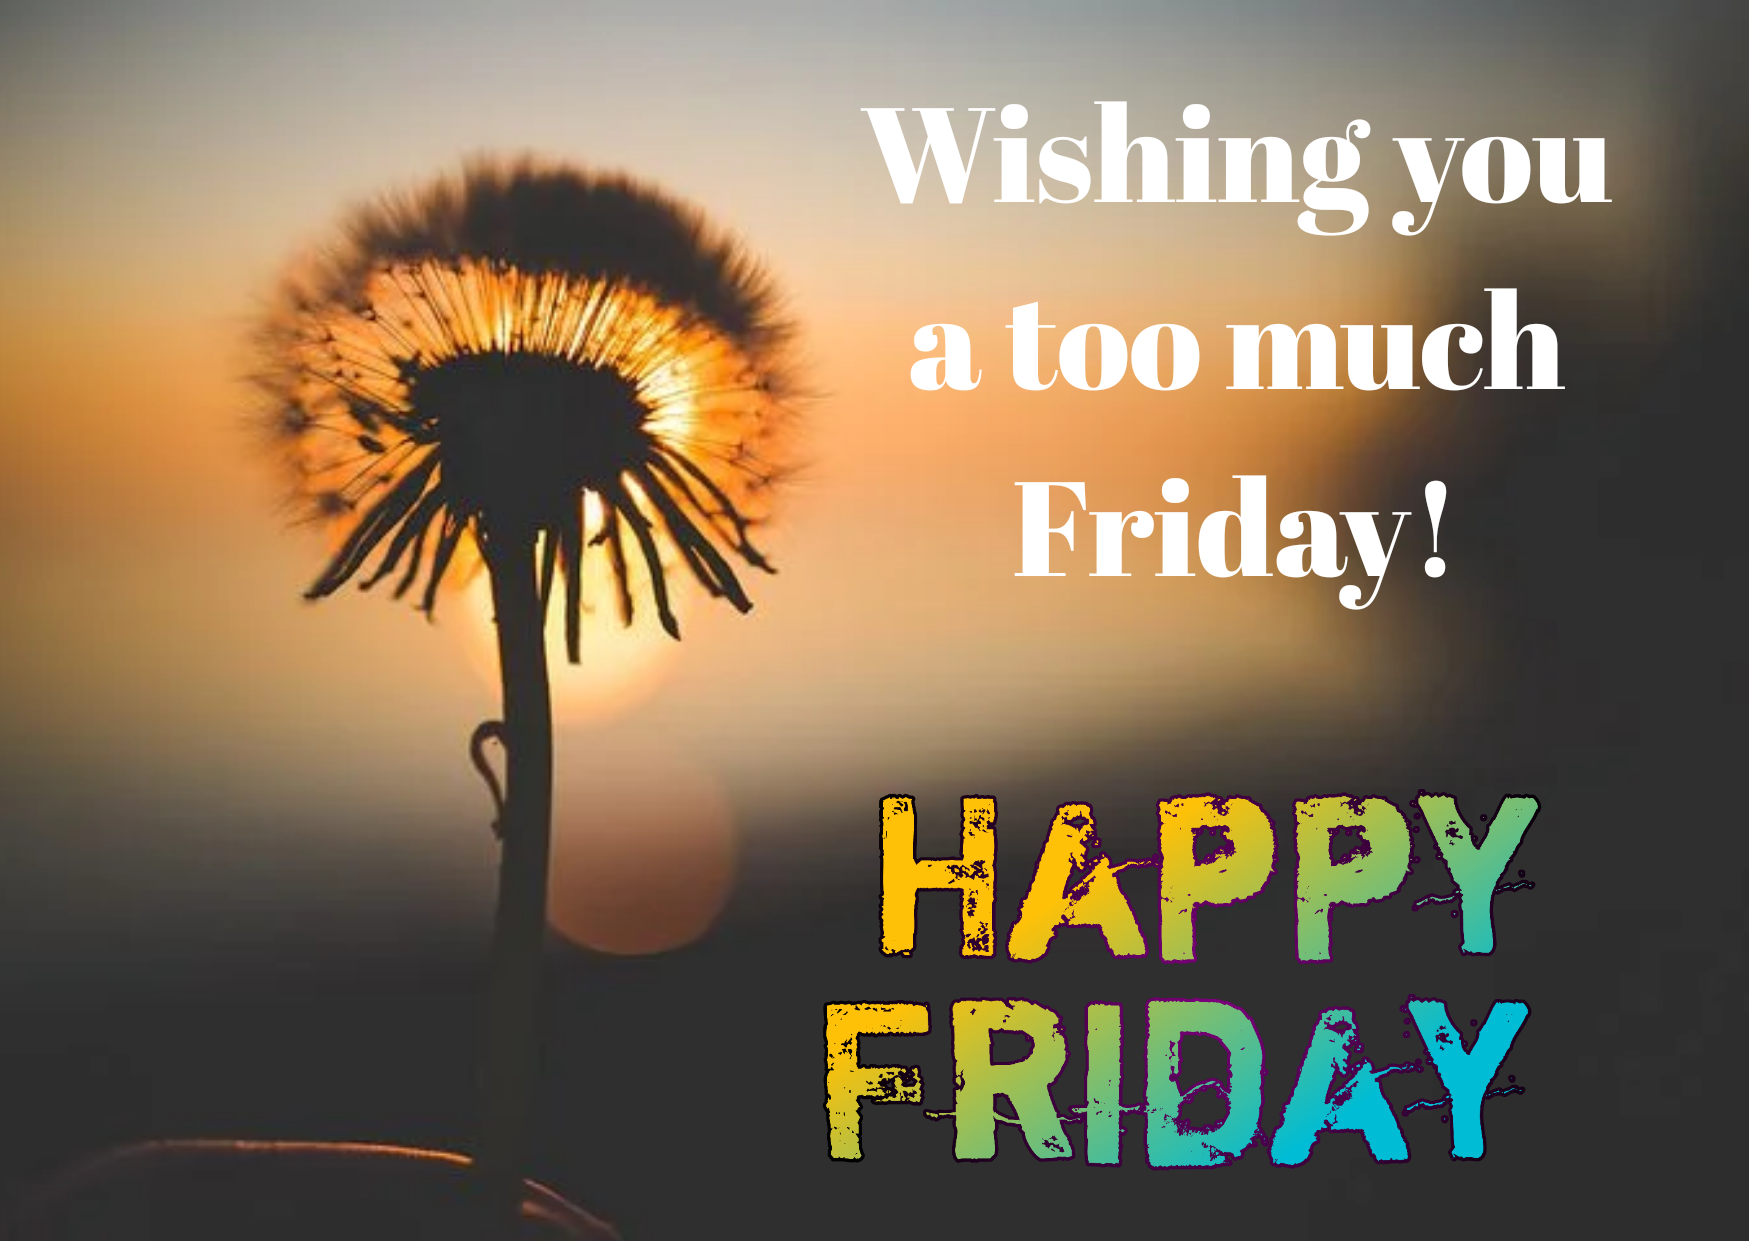 Happy Friday Wishes, Images, Wallpaper, Quotes, For Whatsapp, Free download,